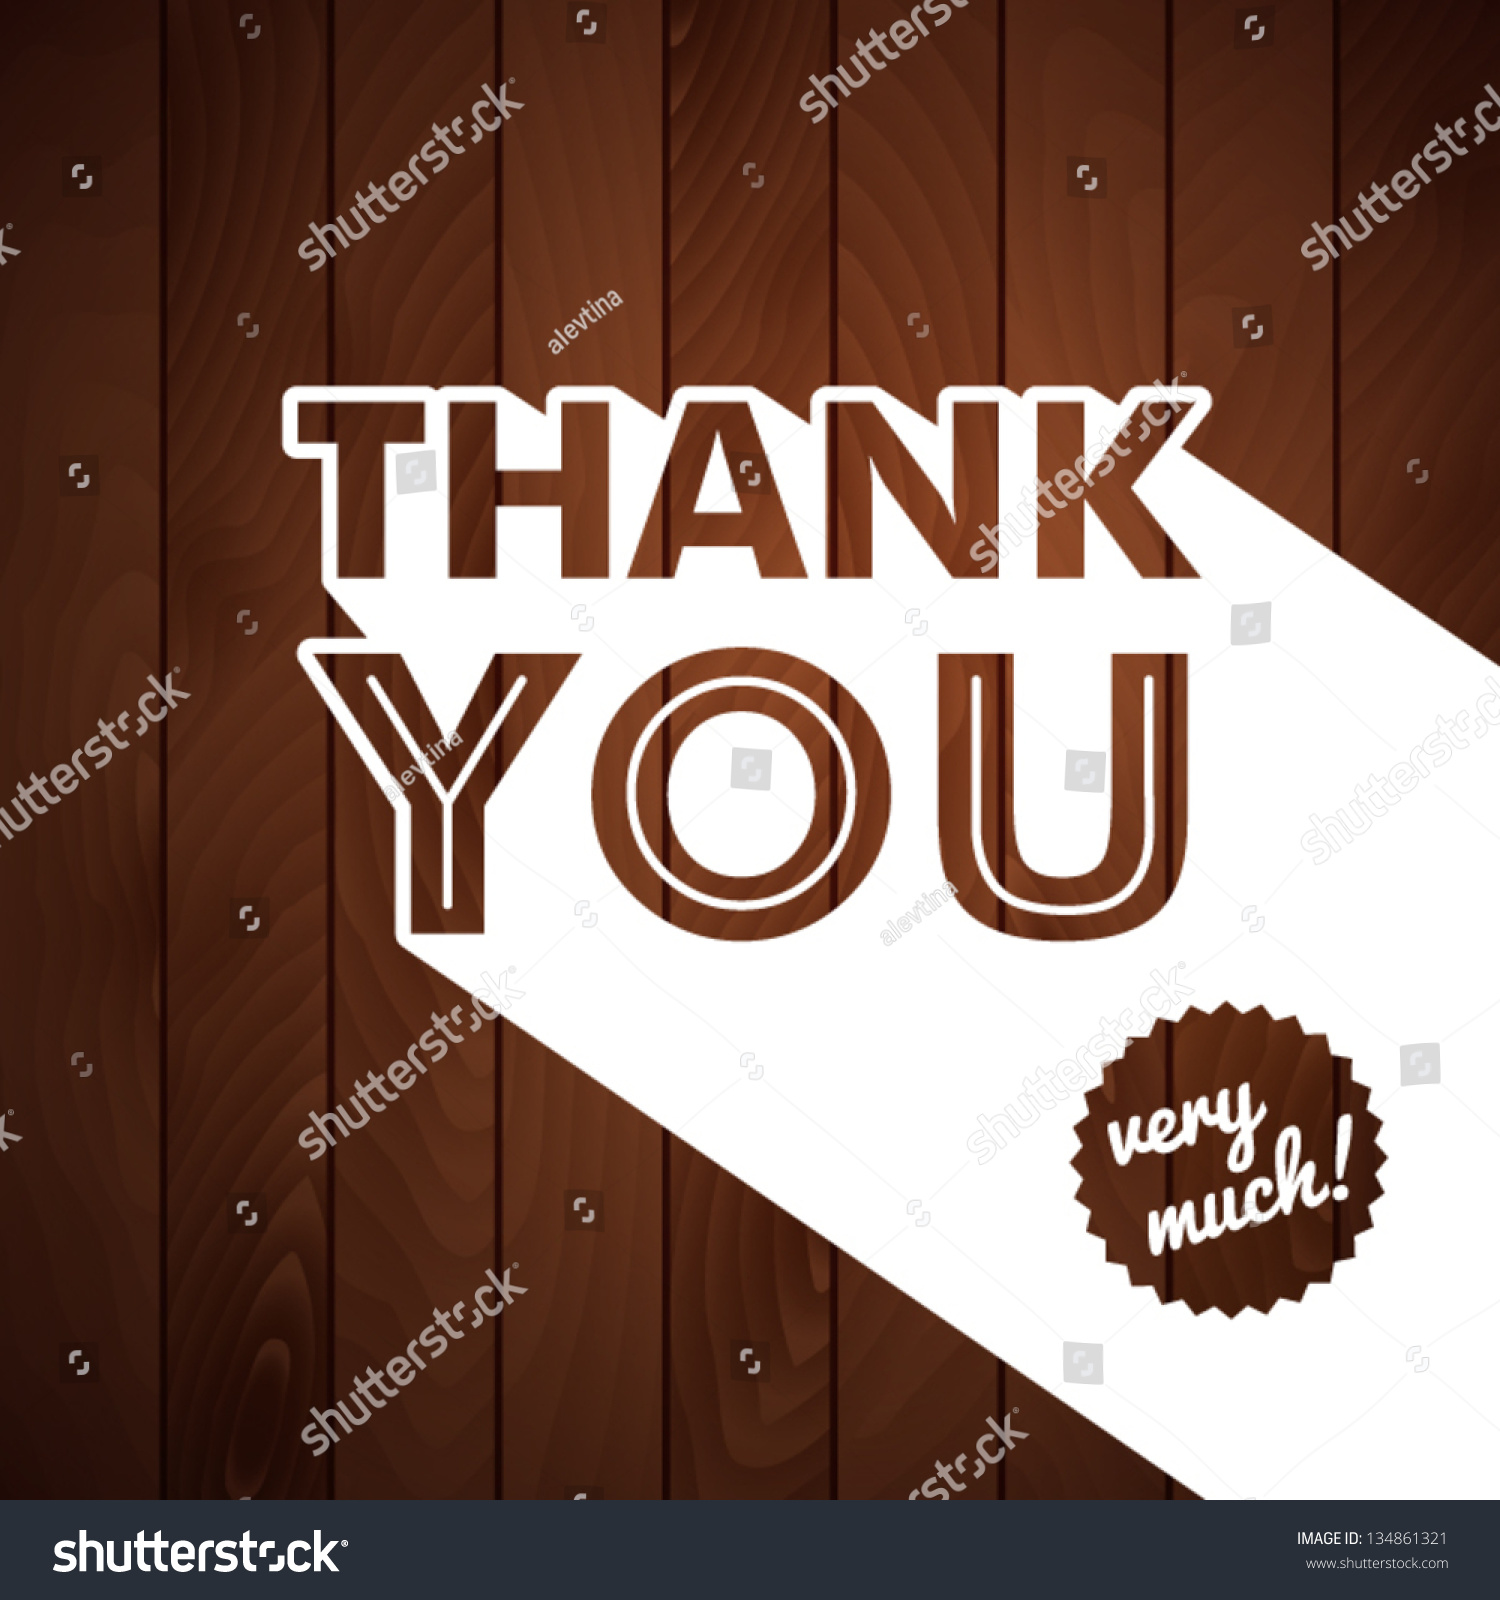 Thank You Card With Typography On A Wooden Background